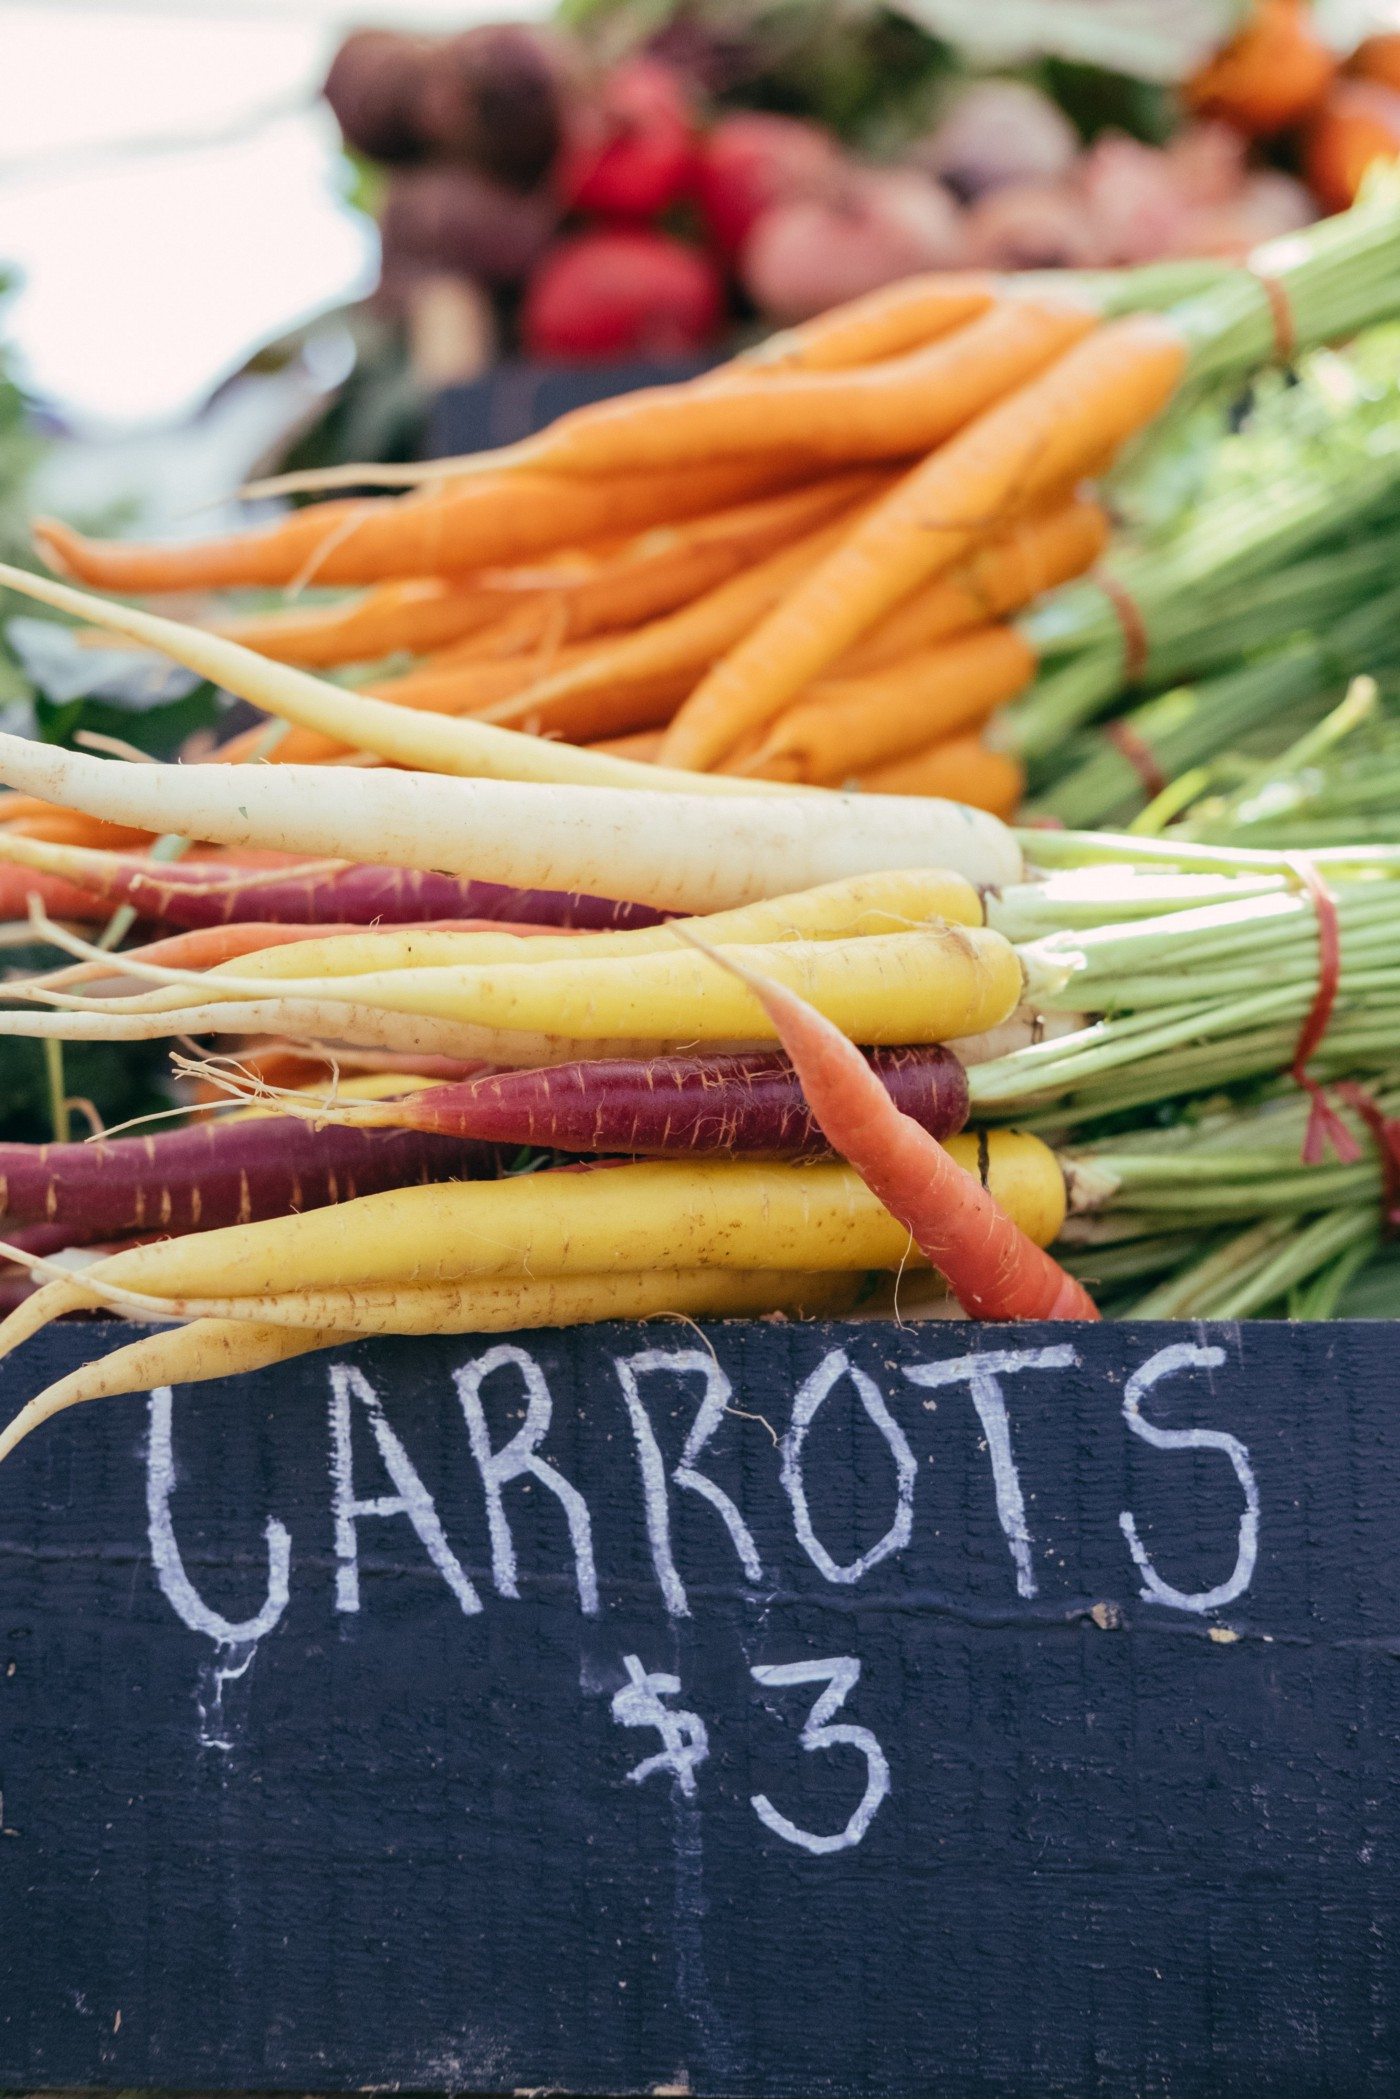 Fresh carrots for sale at Farmer's market. Bunches of carrots for sale.